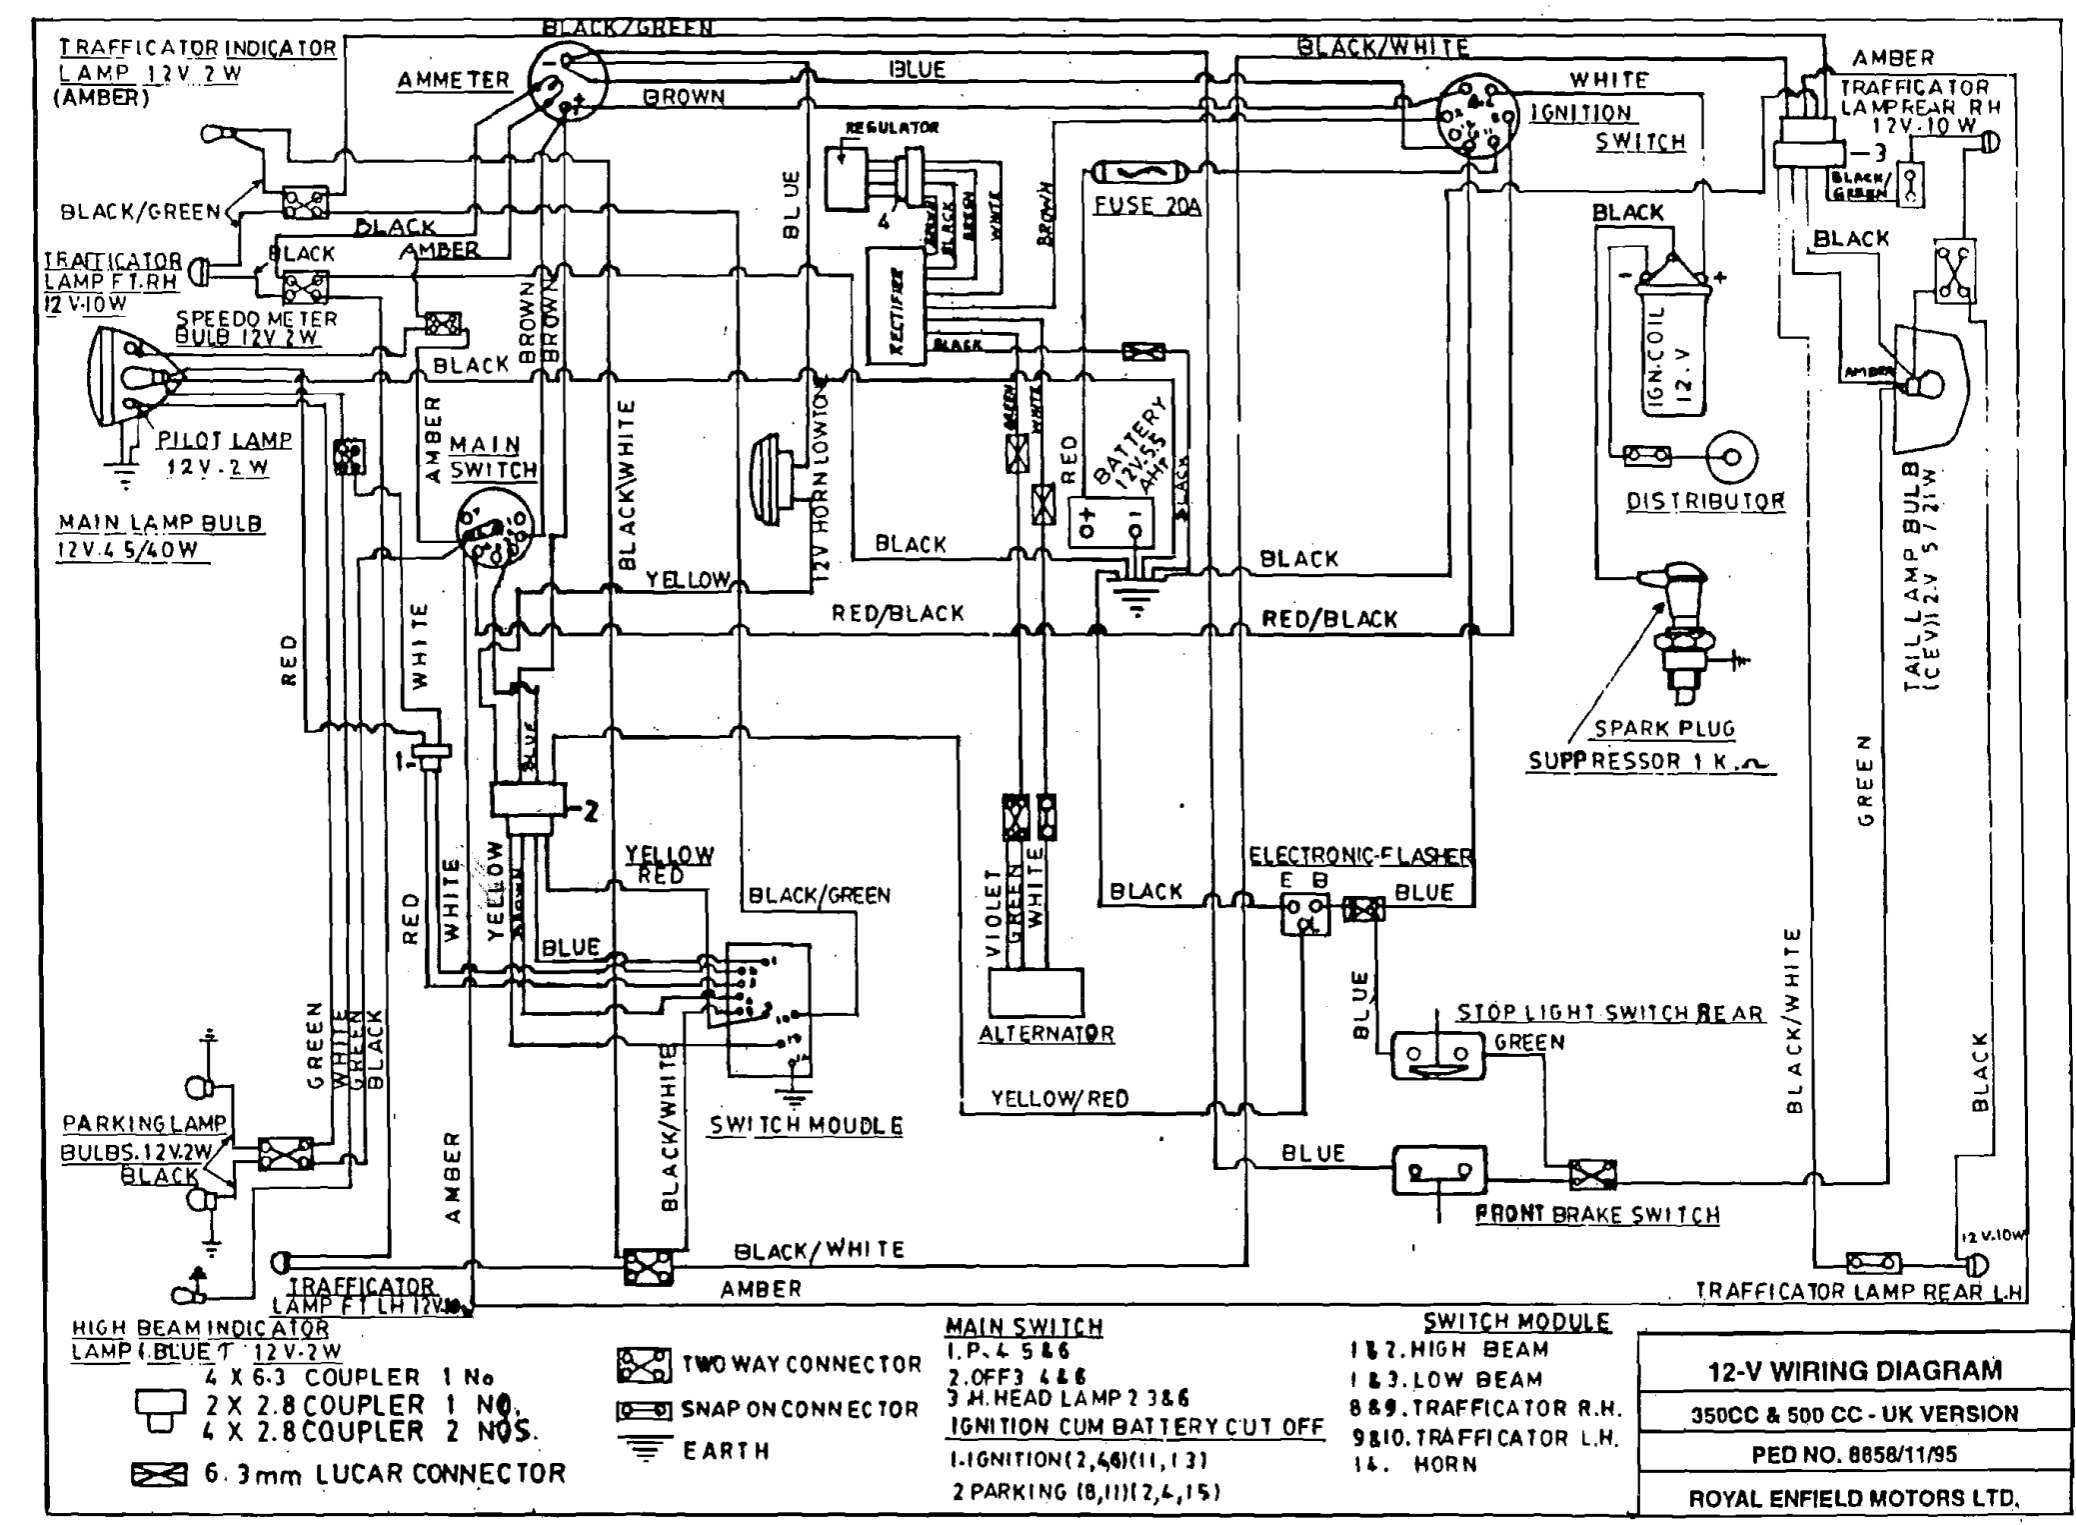 royal enfield thunderbird 350 wiring diagram   44 wiring diagram images